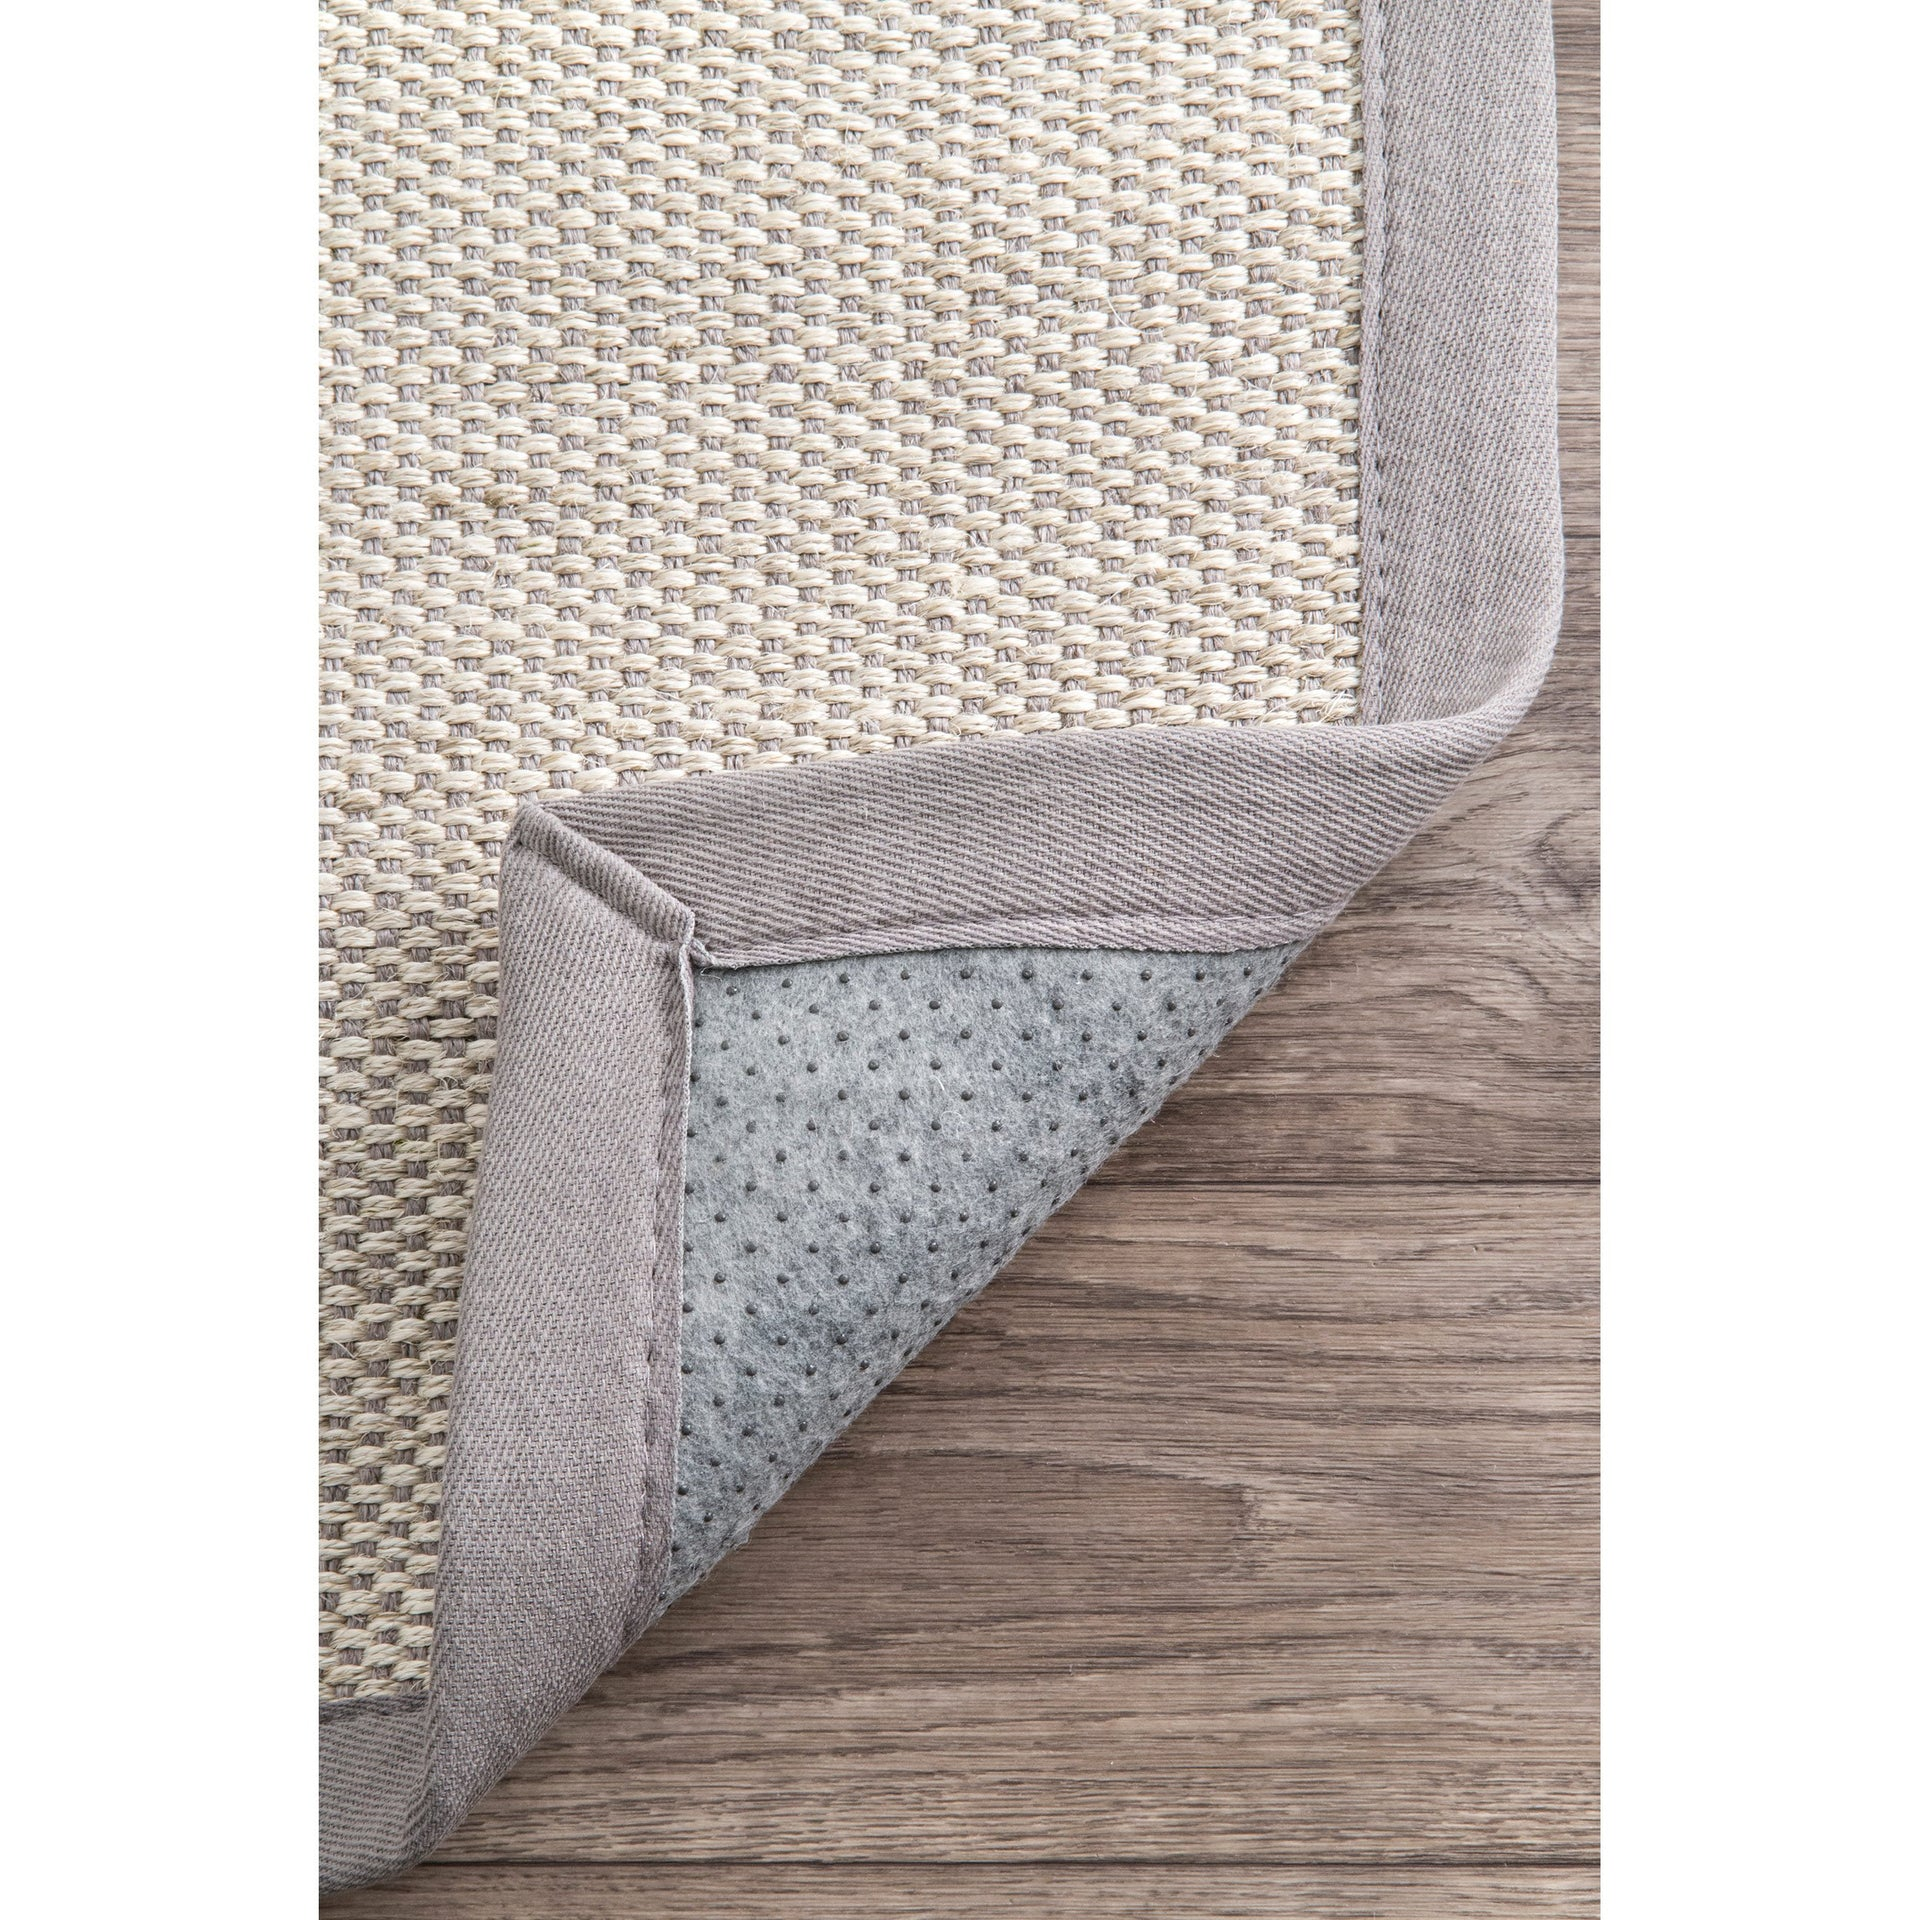 BORDERED CHLOE SISAL <BR> (2 DESIGNS)